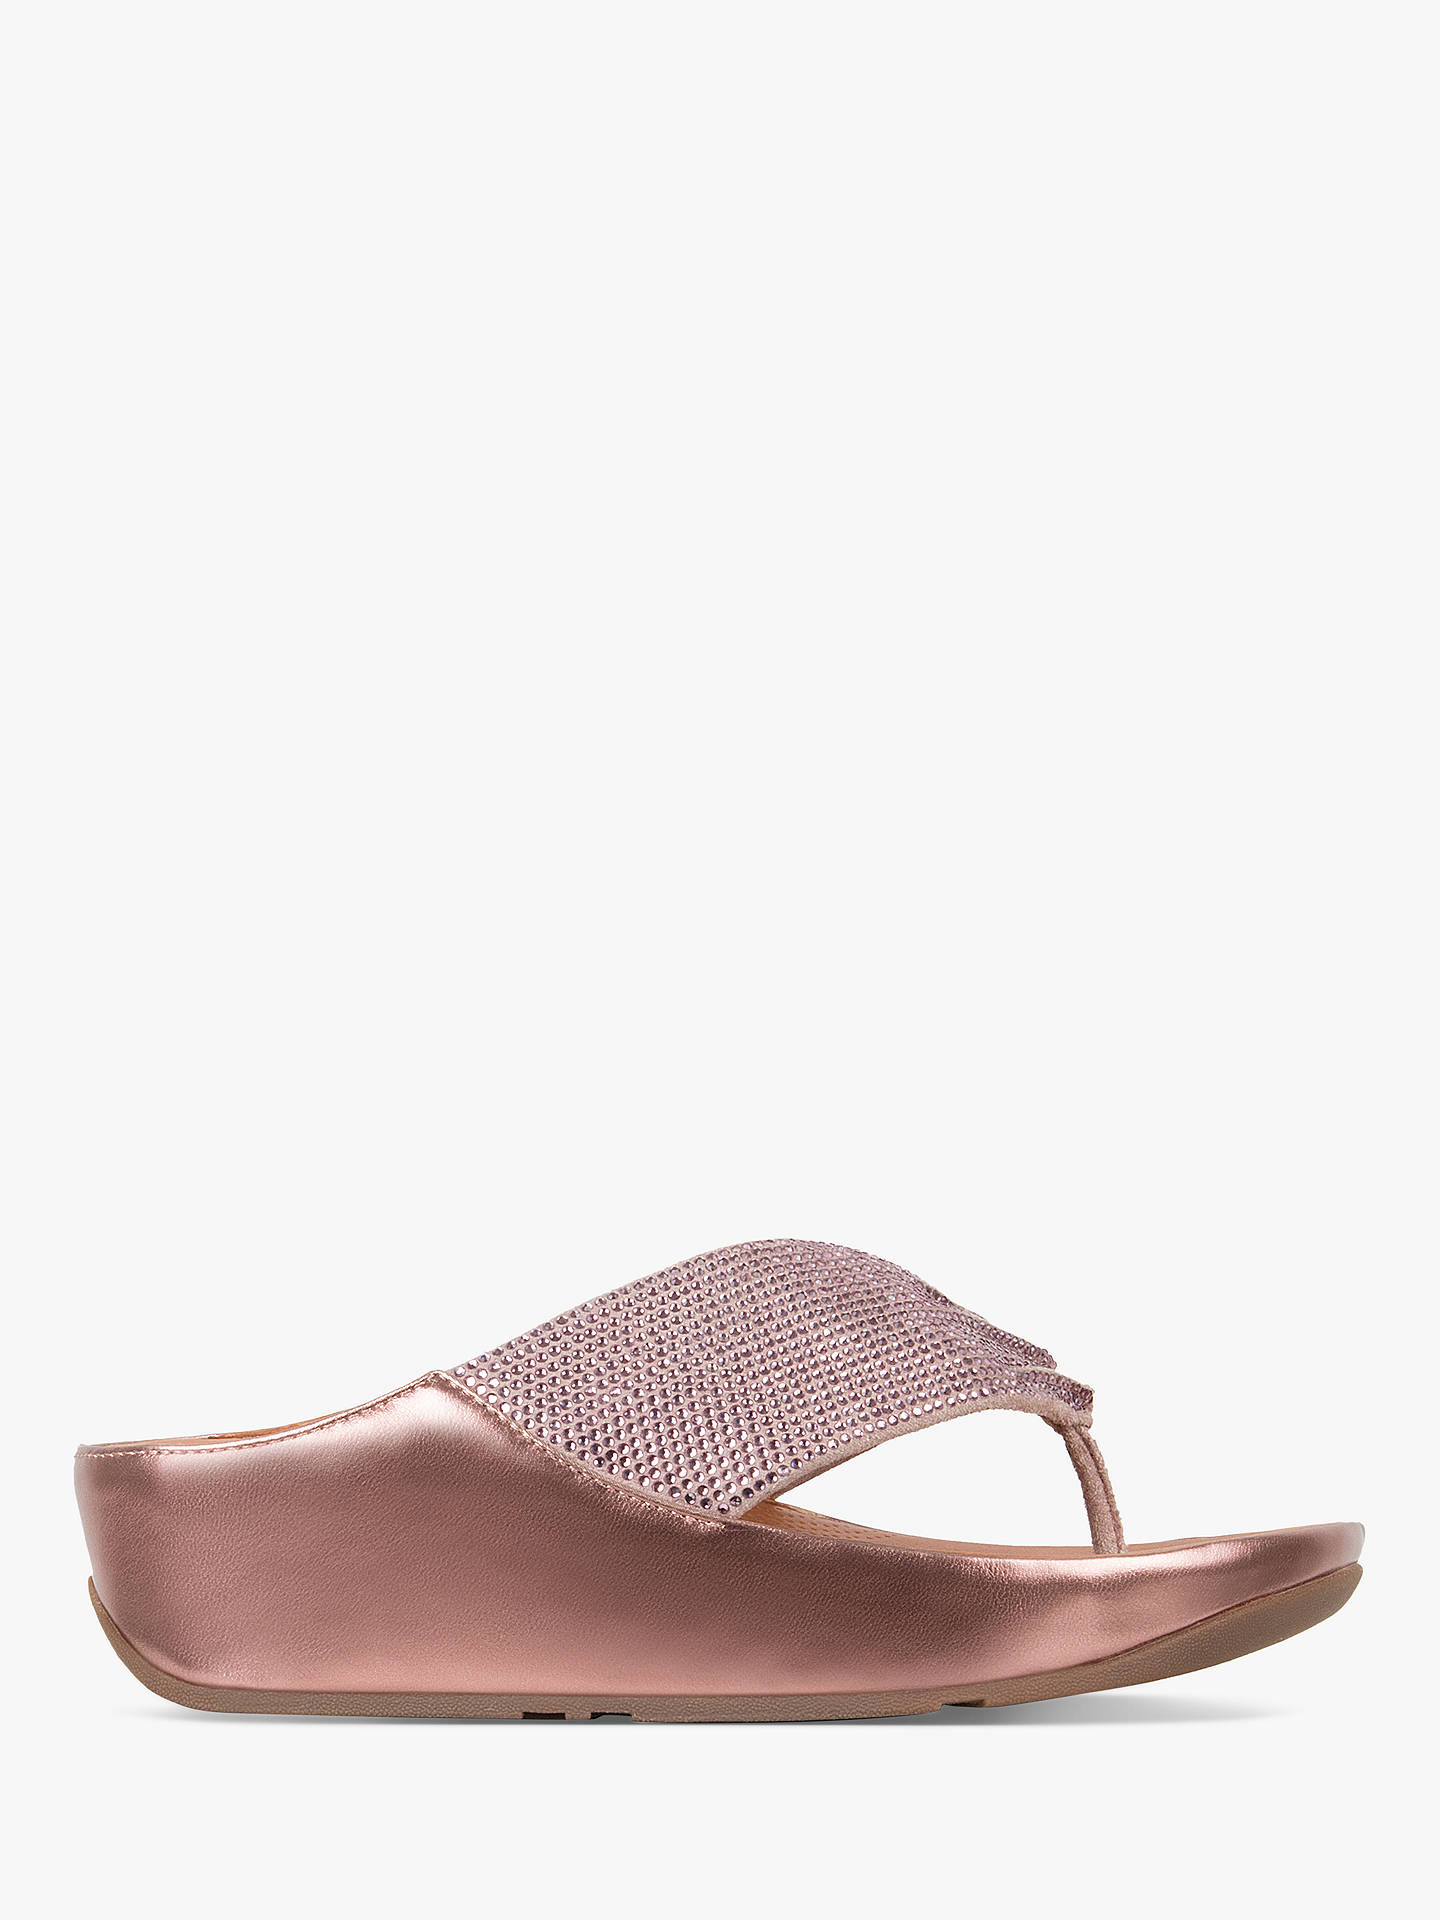 7fbca08789 FitFlop Twiss Crystall Toe Post Sandals at John Lewis   Partners